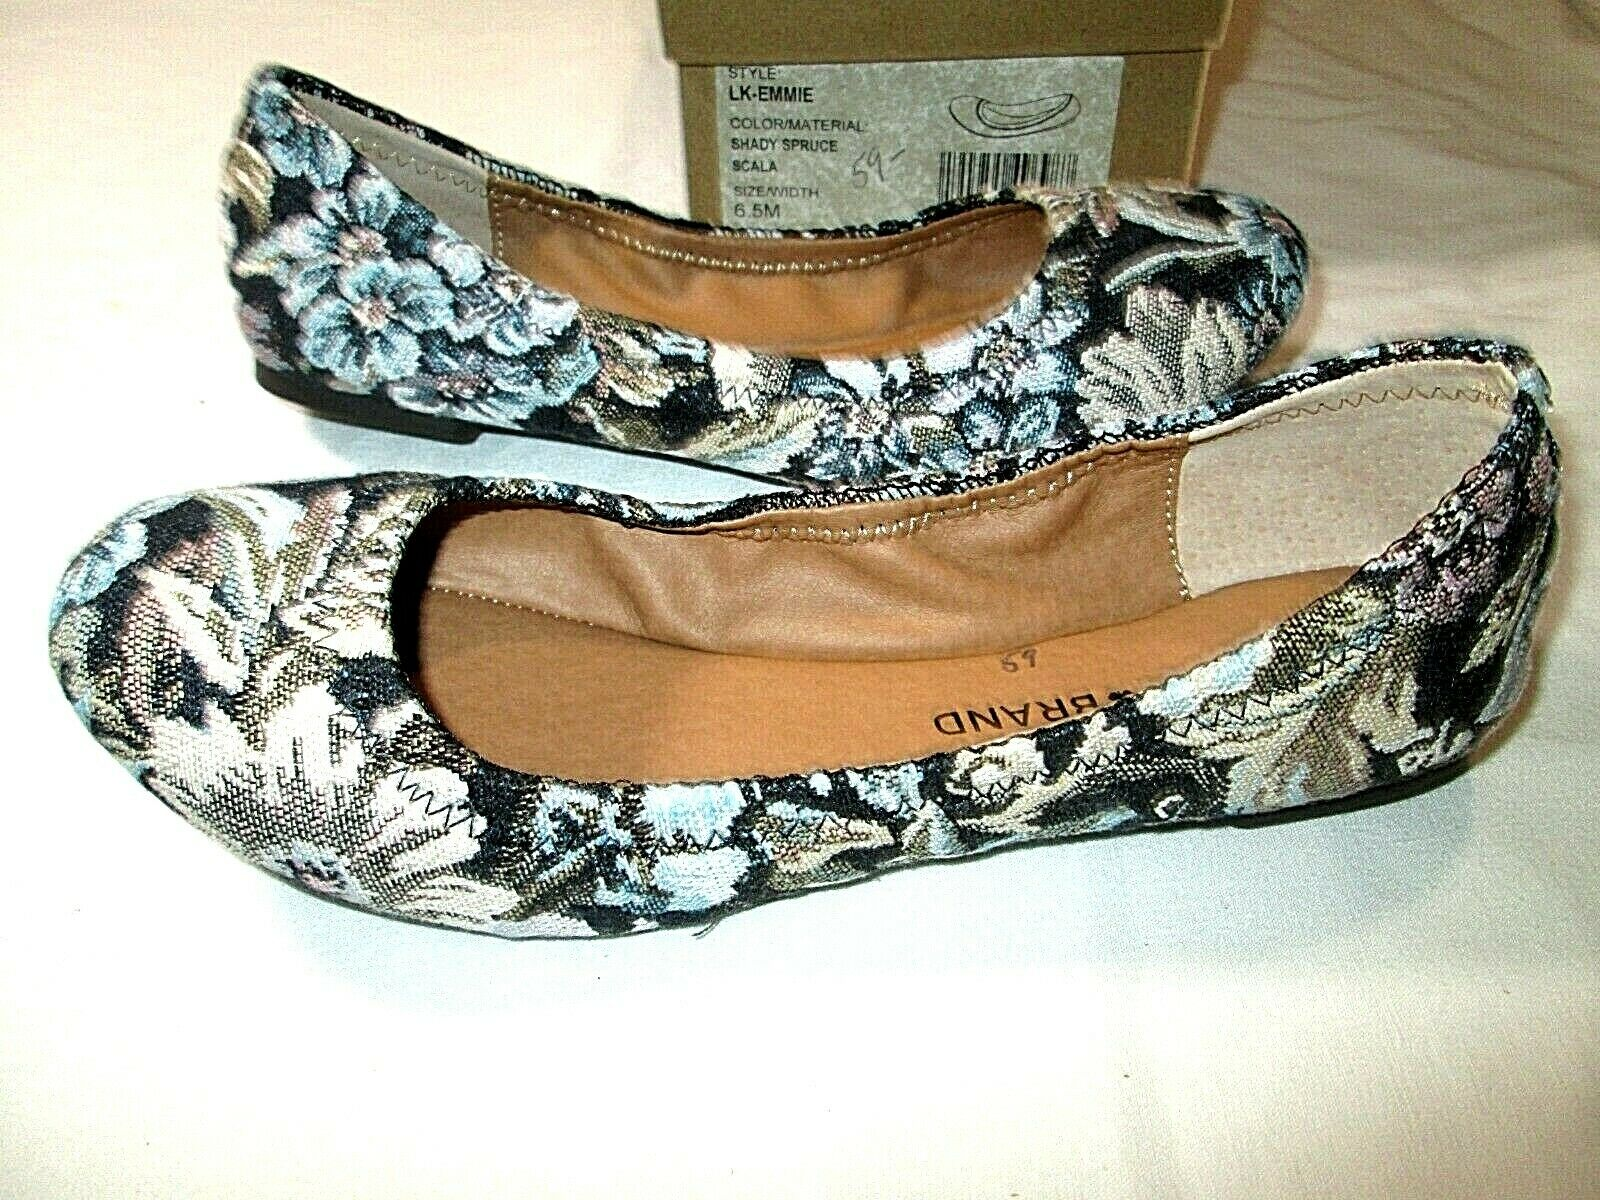 NEW Lucky Brand Women's Ballet Shoes Emmie Size 6.5M Shady Spruce NIB